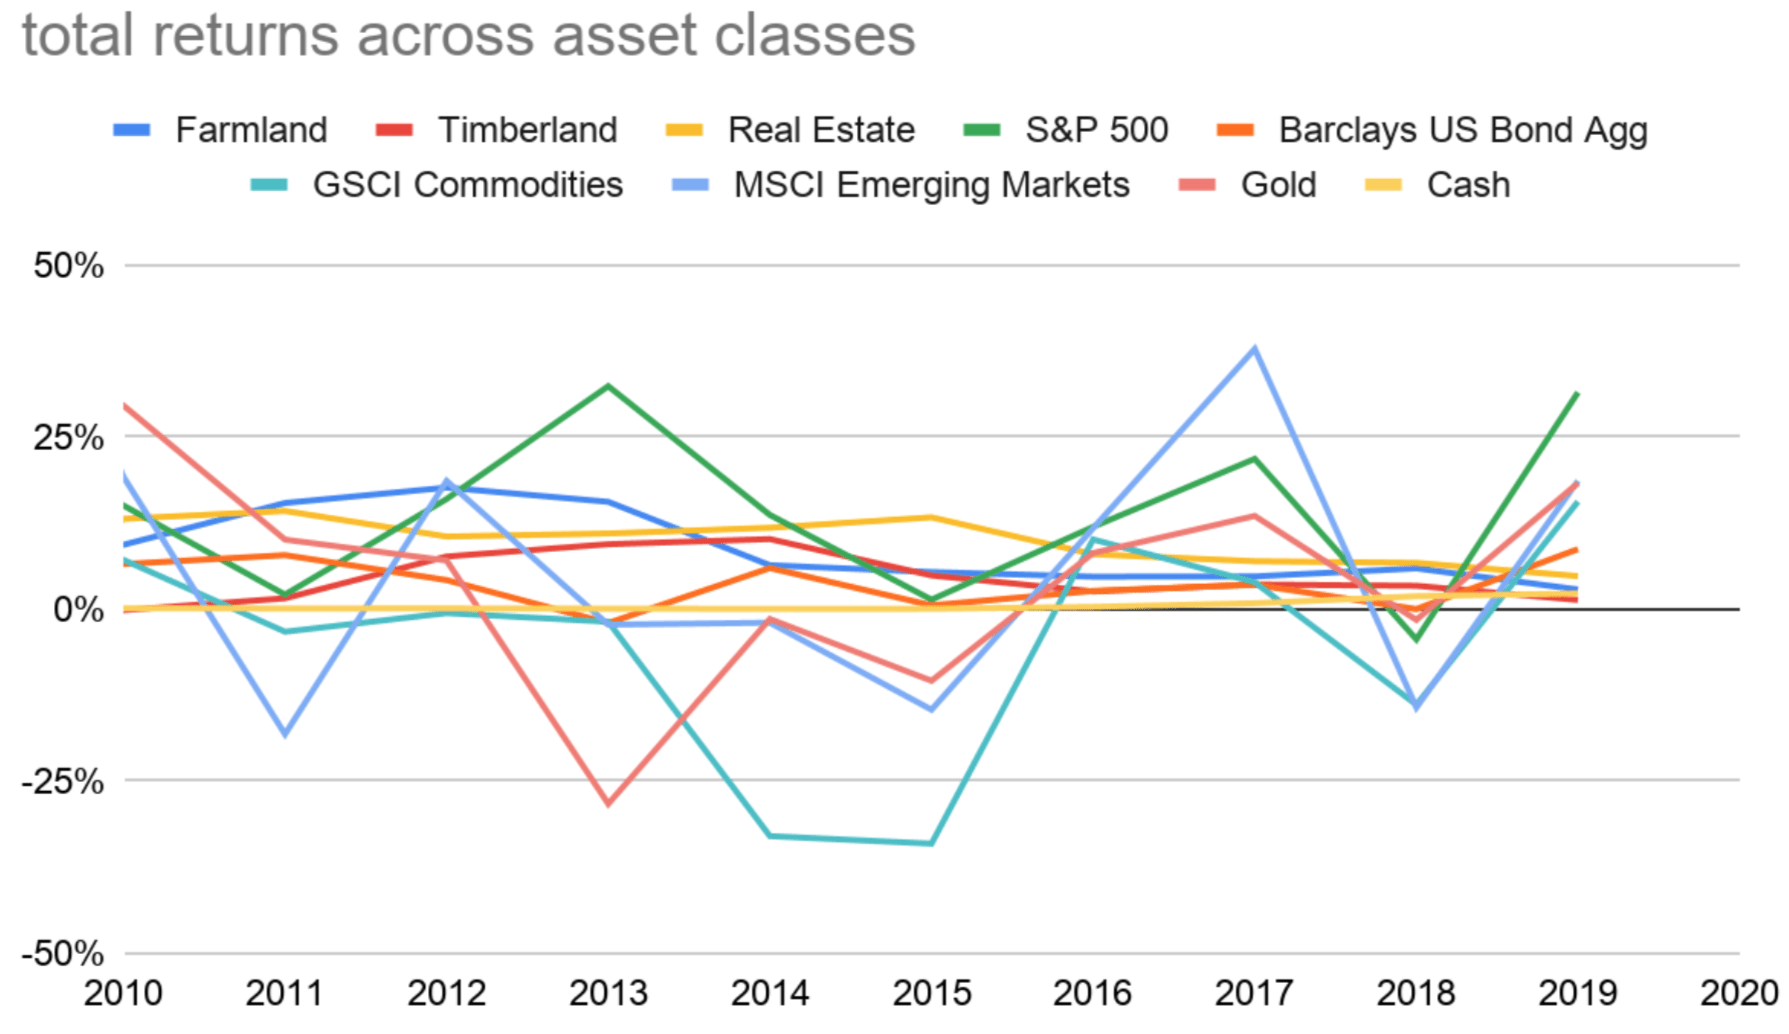 Total Returns across asset classes, including farmland, timberland, real estate, S&P 500, US Bond Aggregate, Commodities, Gold